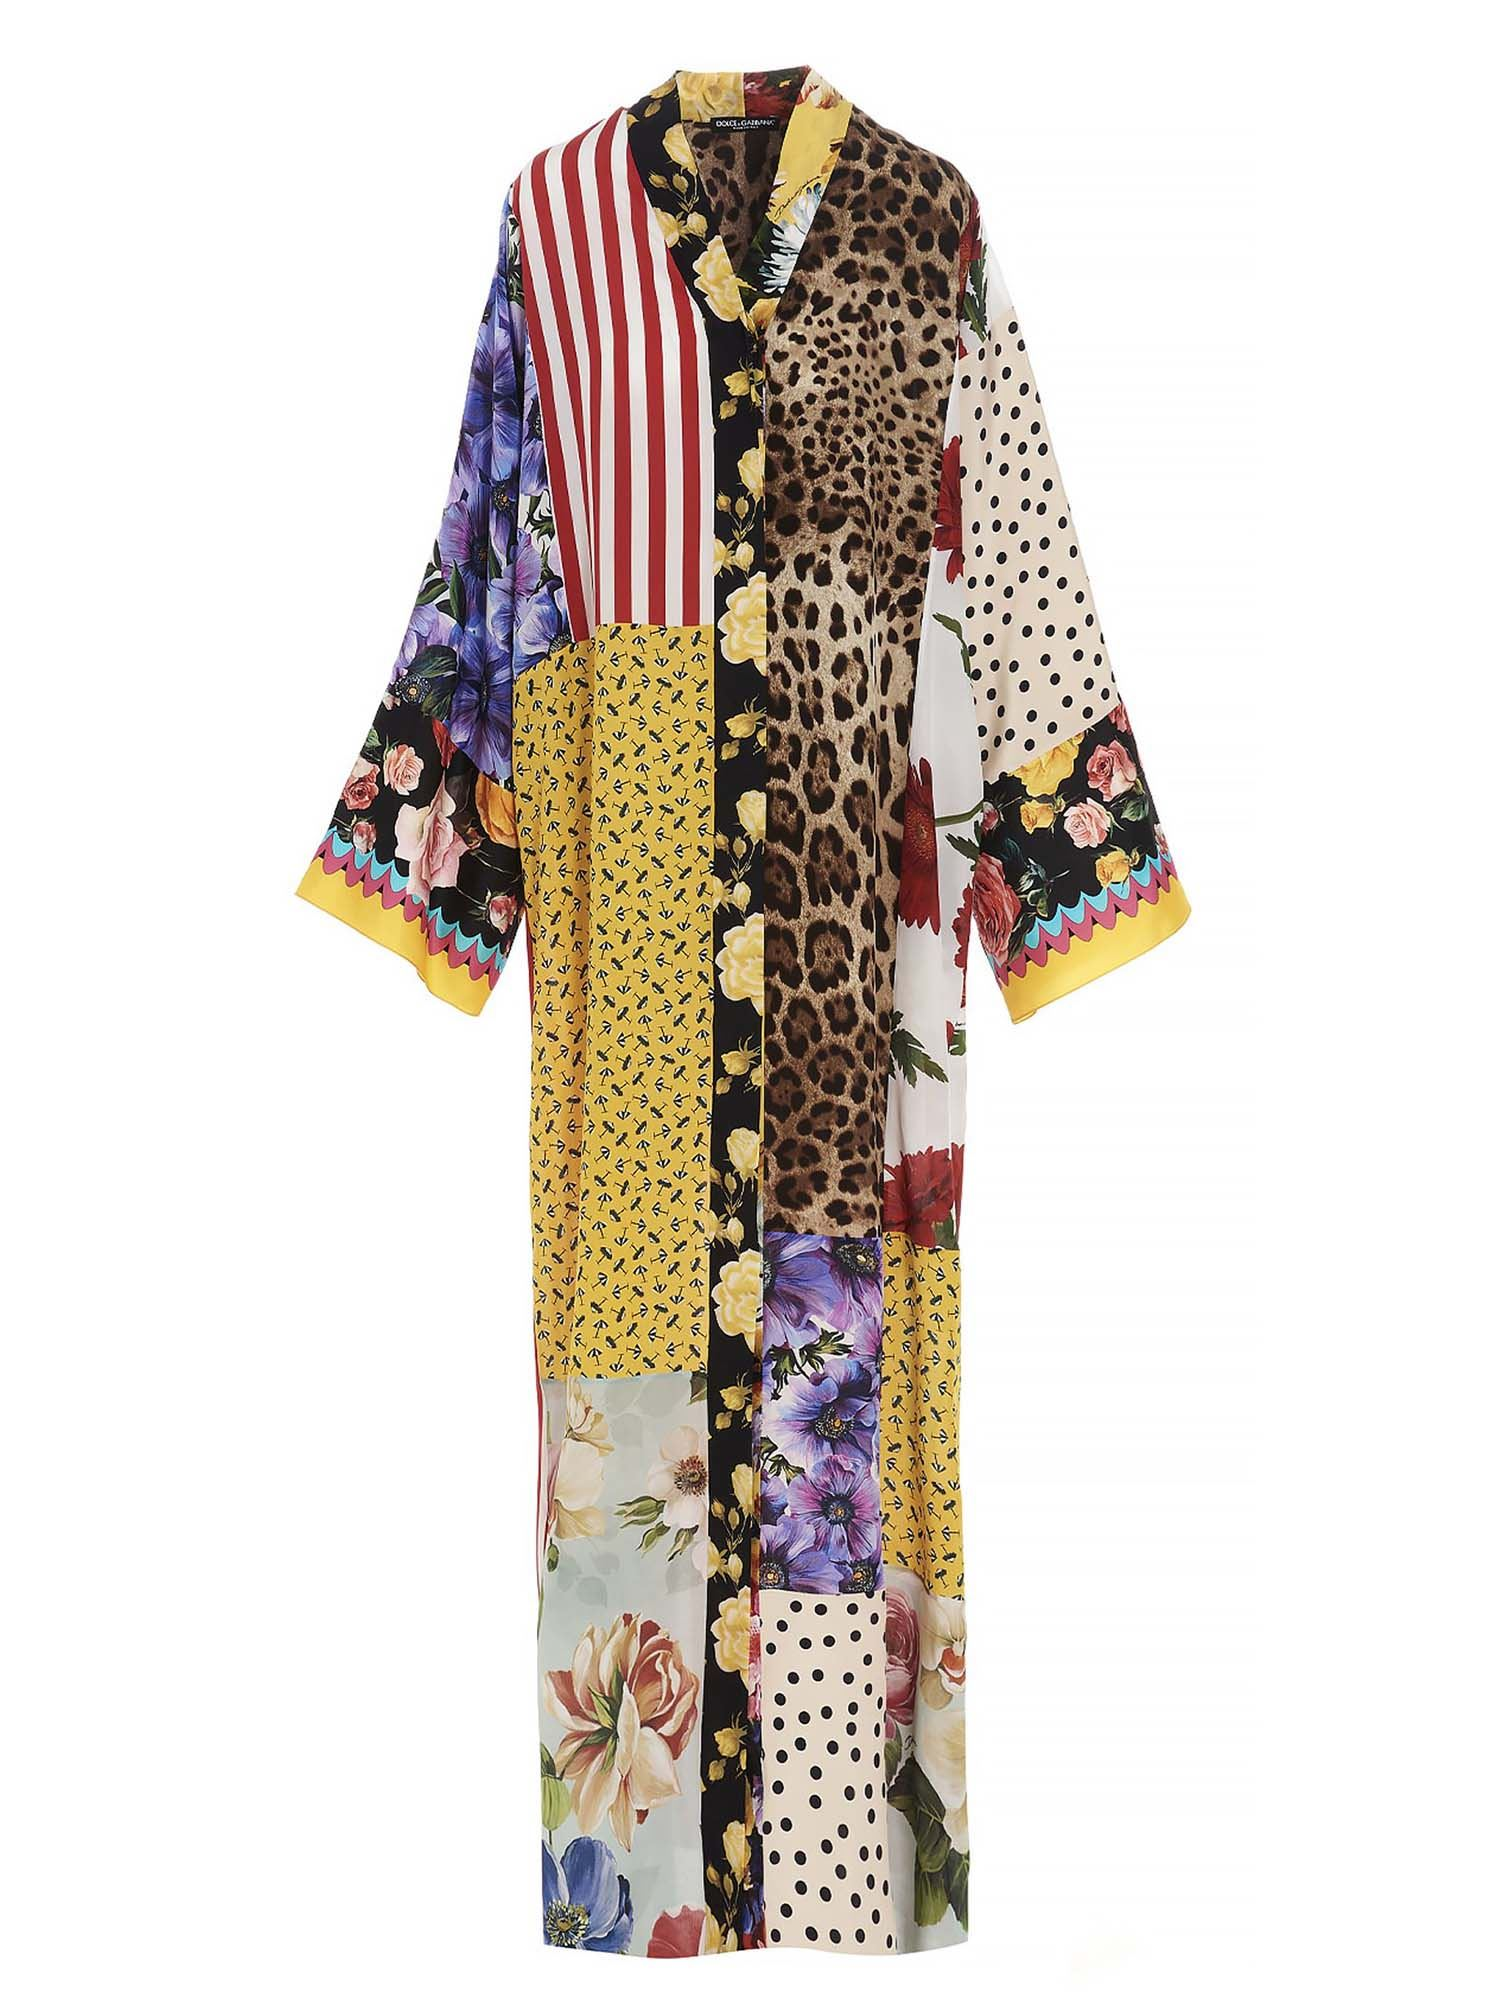 Dolce & Gabbana PATCHWORK MAXI DRESS IN MULTICOLOR